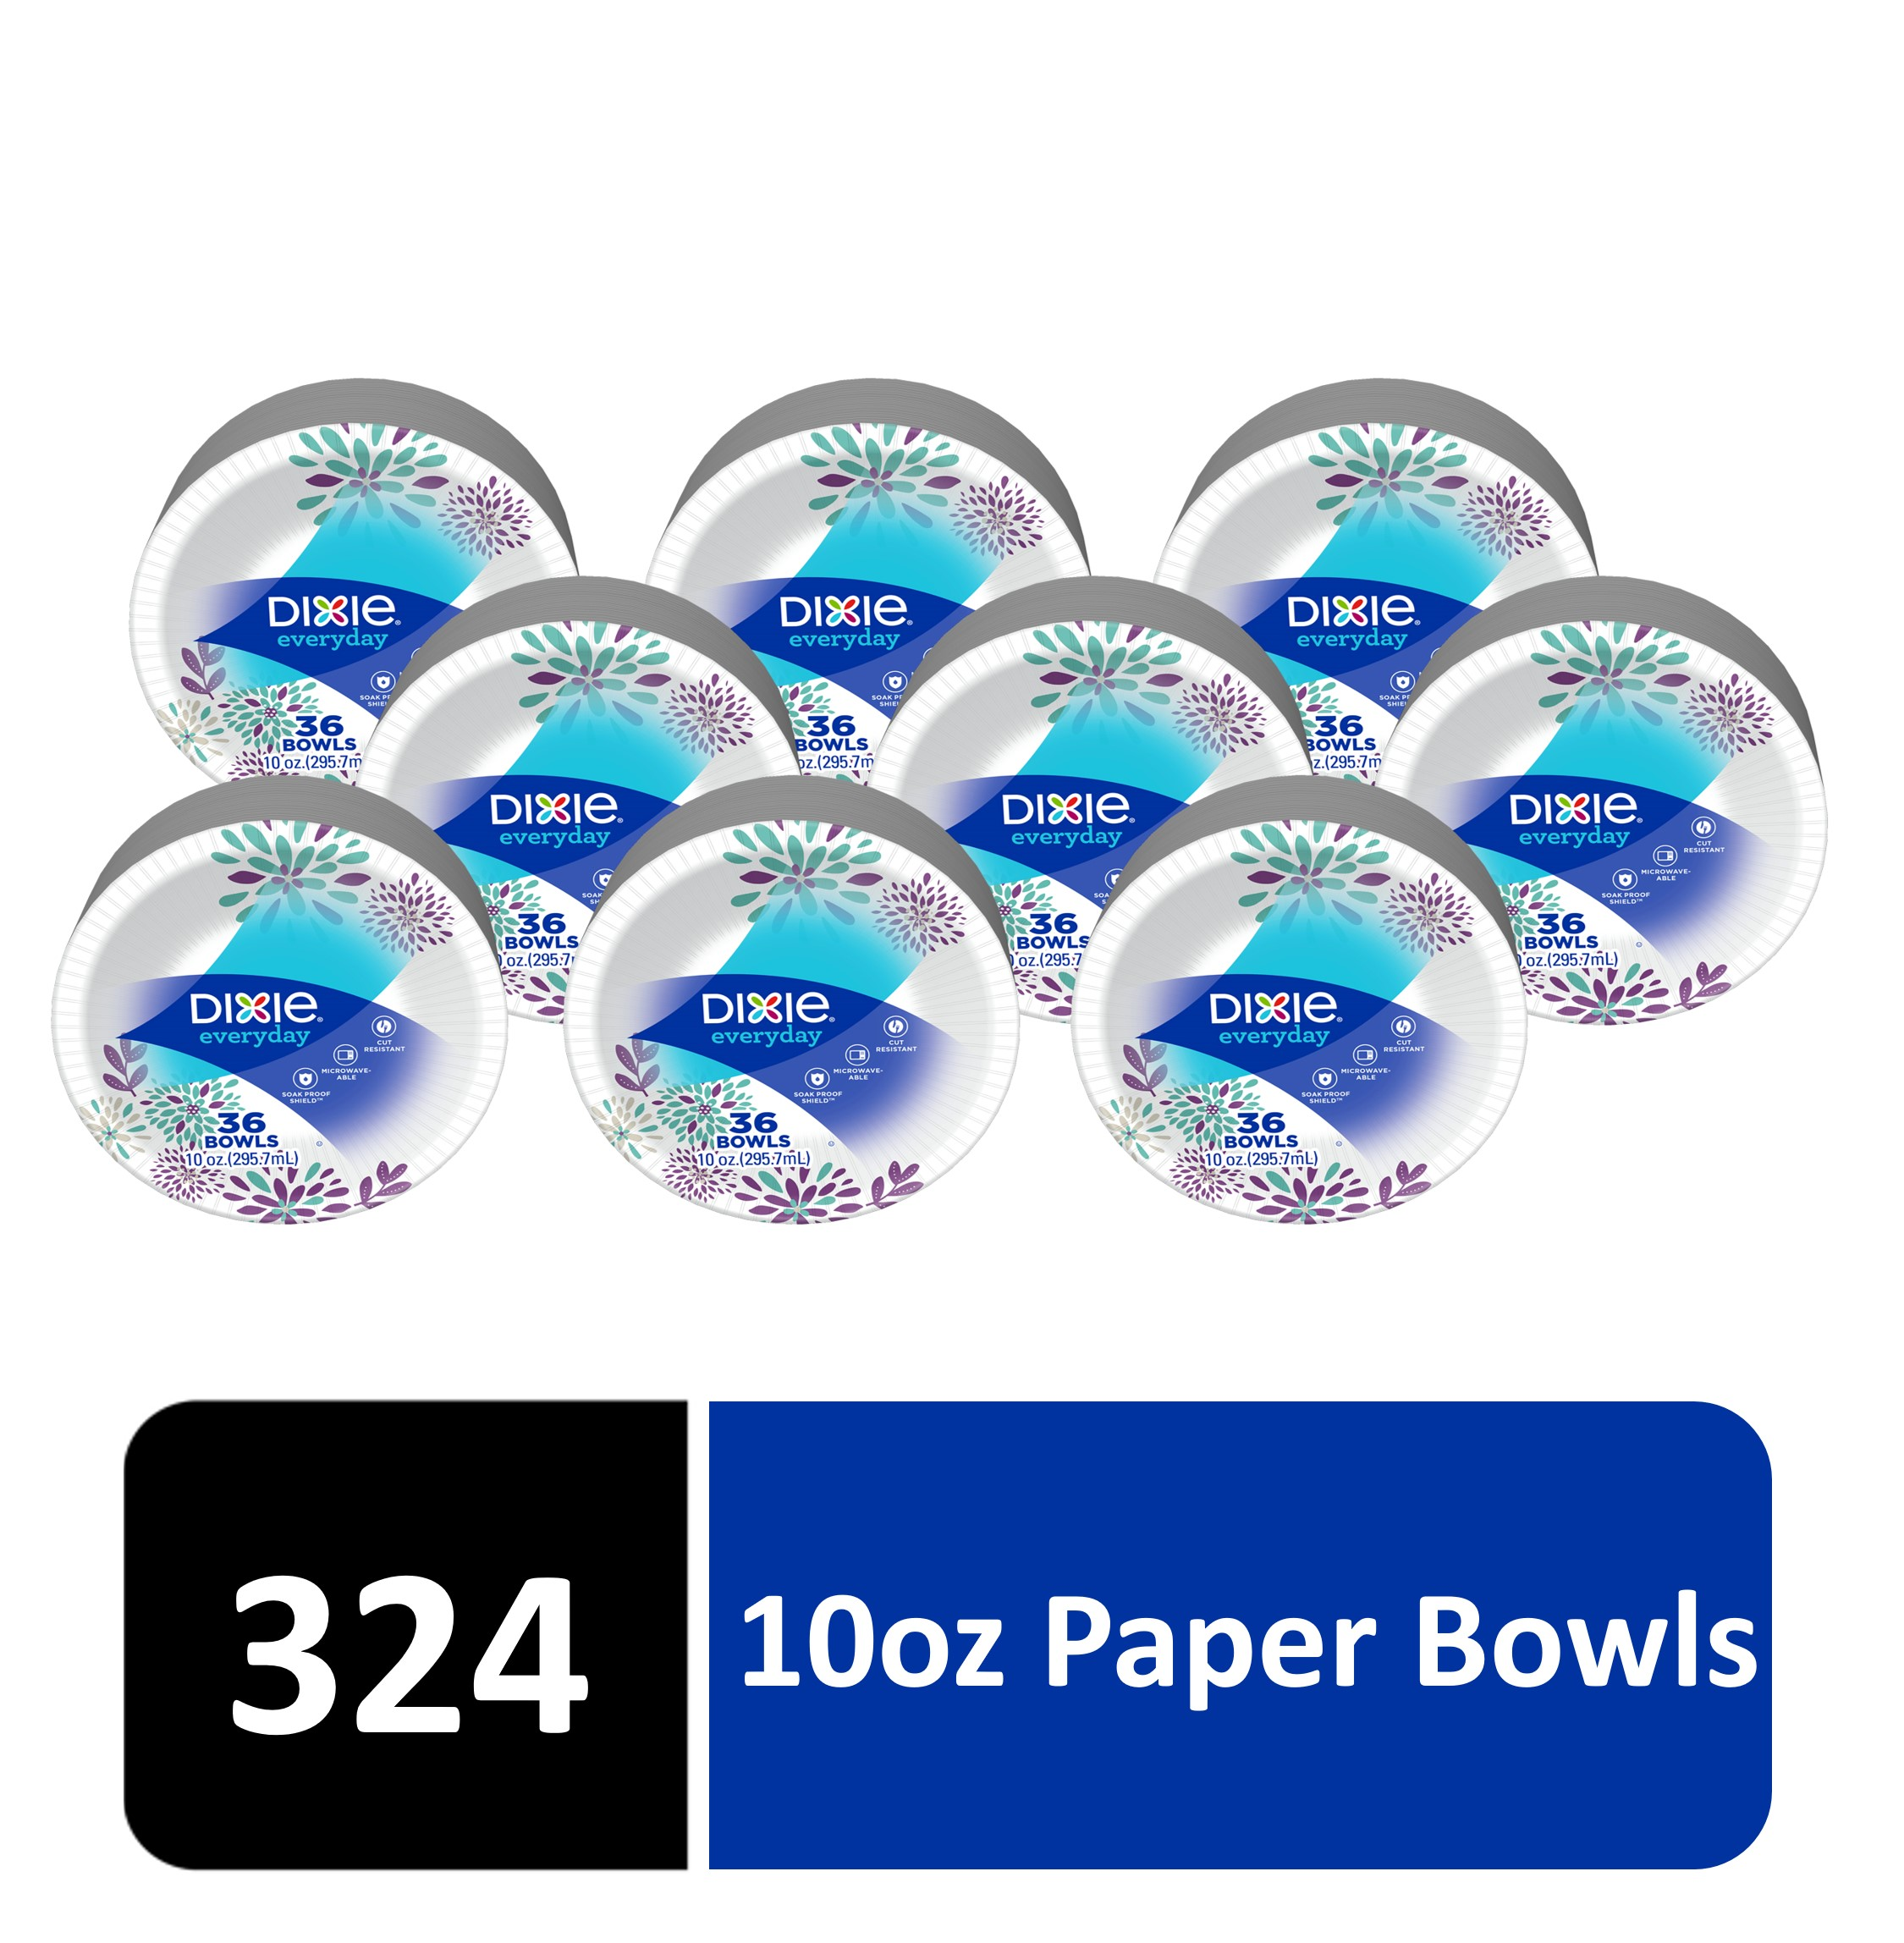 9 Packs of 36 Bowls Dixie Everyday Paper Bowls 10 Ounces 324 Count